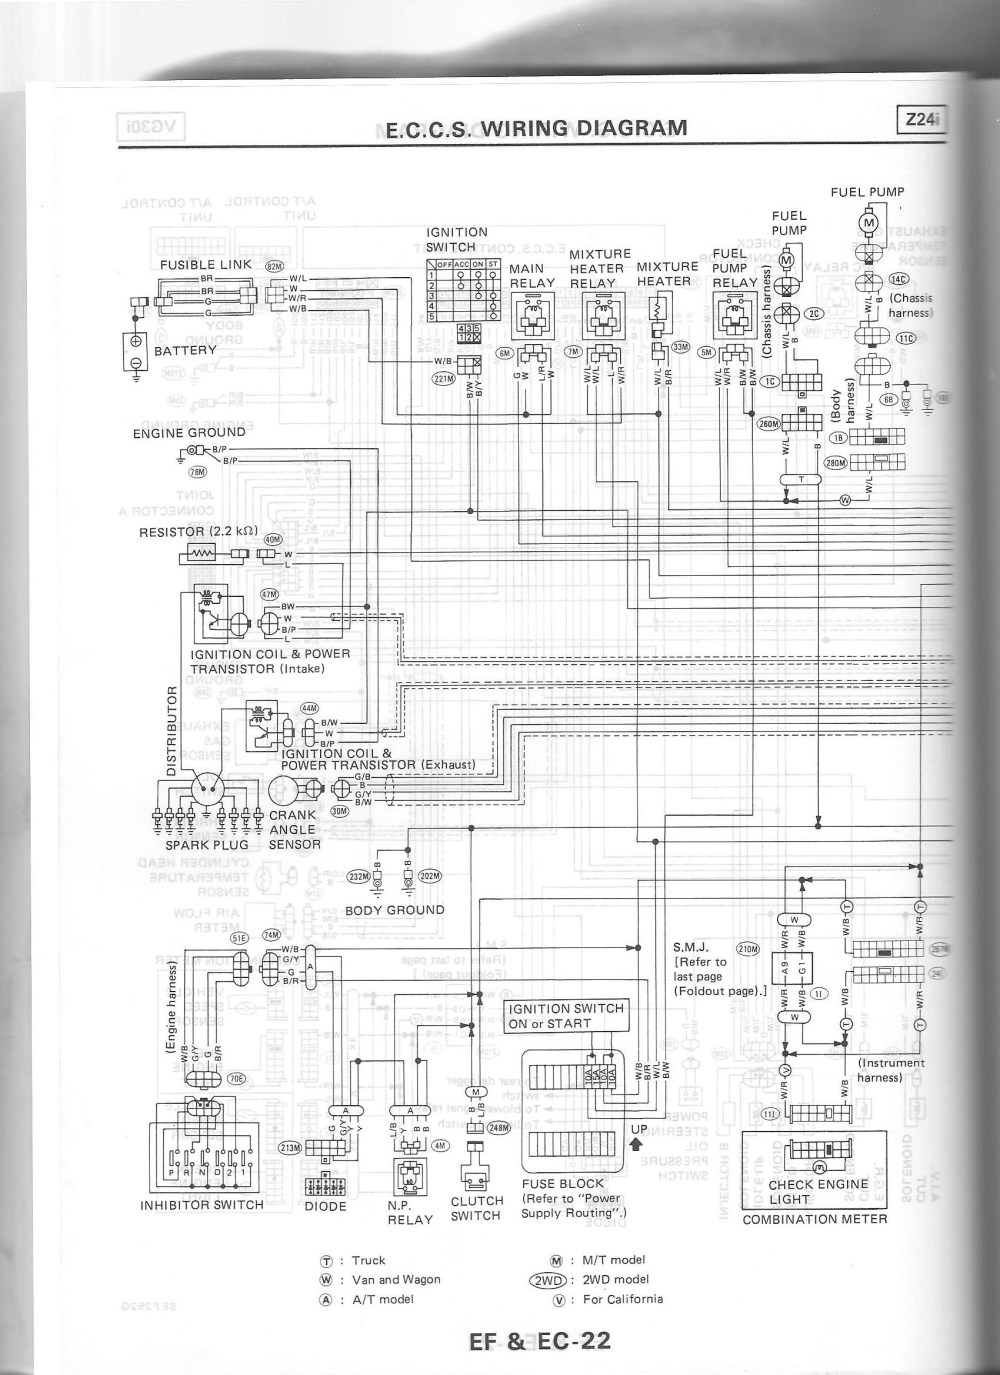 medium resolution of 89 nissan 300zx diagram wiring diagram used 89 nissan 300zx diagram